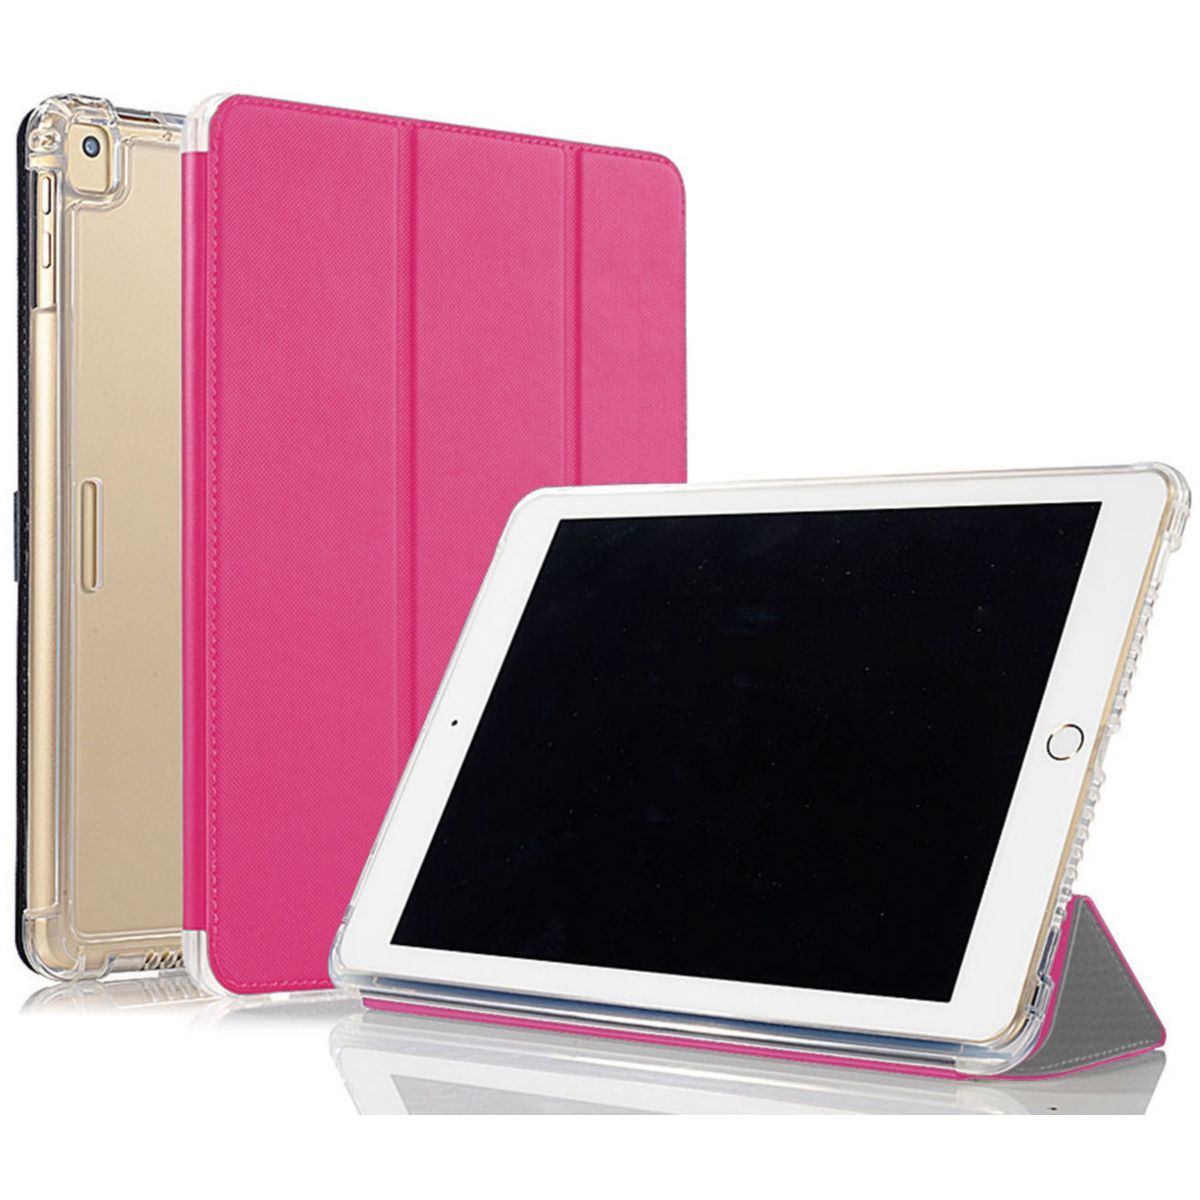 Coque IBROZ Antichoc + Smart Cover iPAD 9.7 Rose (photo)